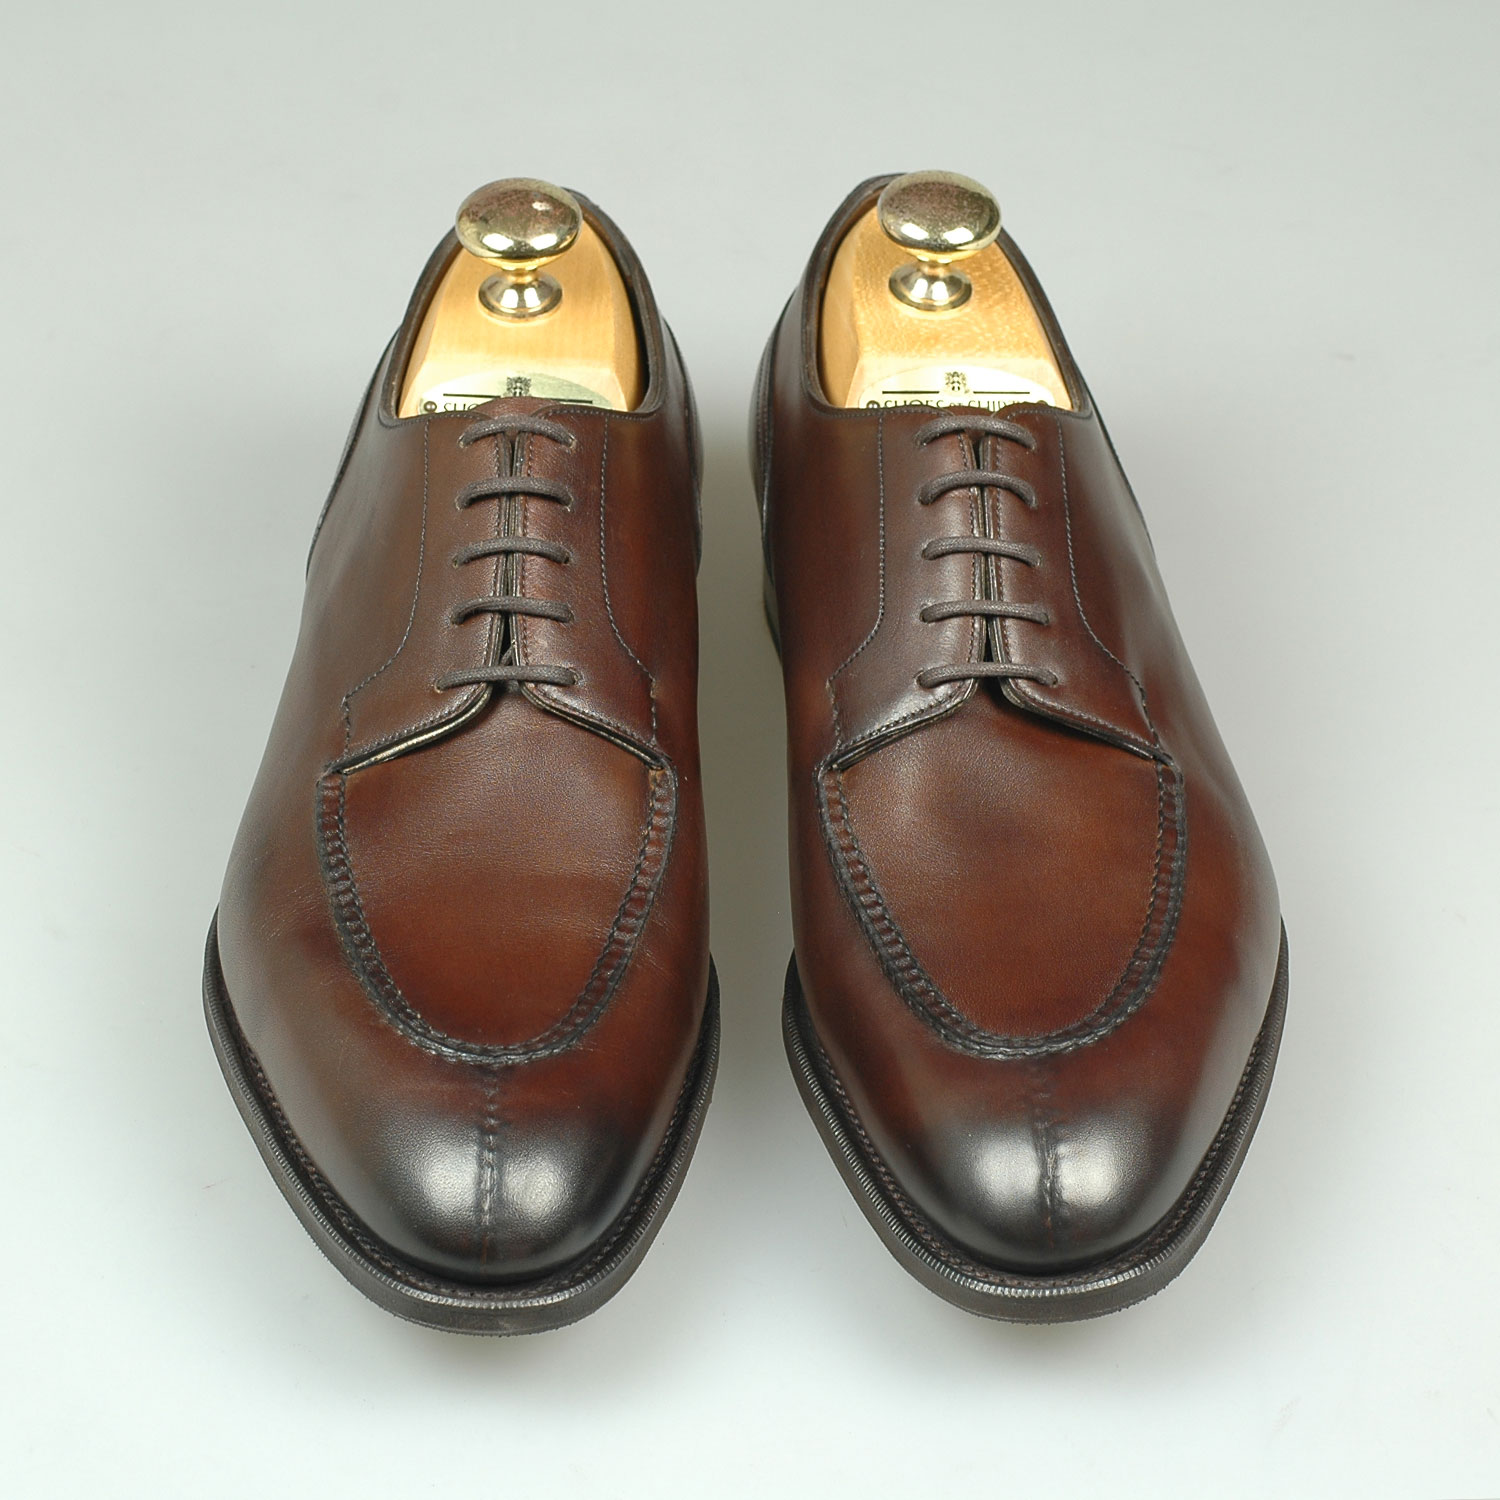 Edward Green Dover Shoes Shoes Shoes Amp Shirts